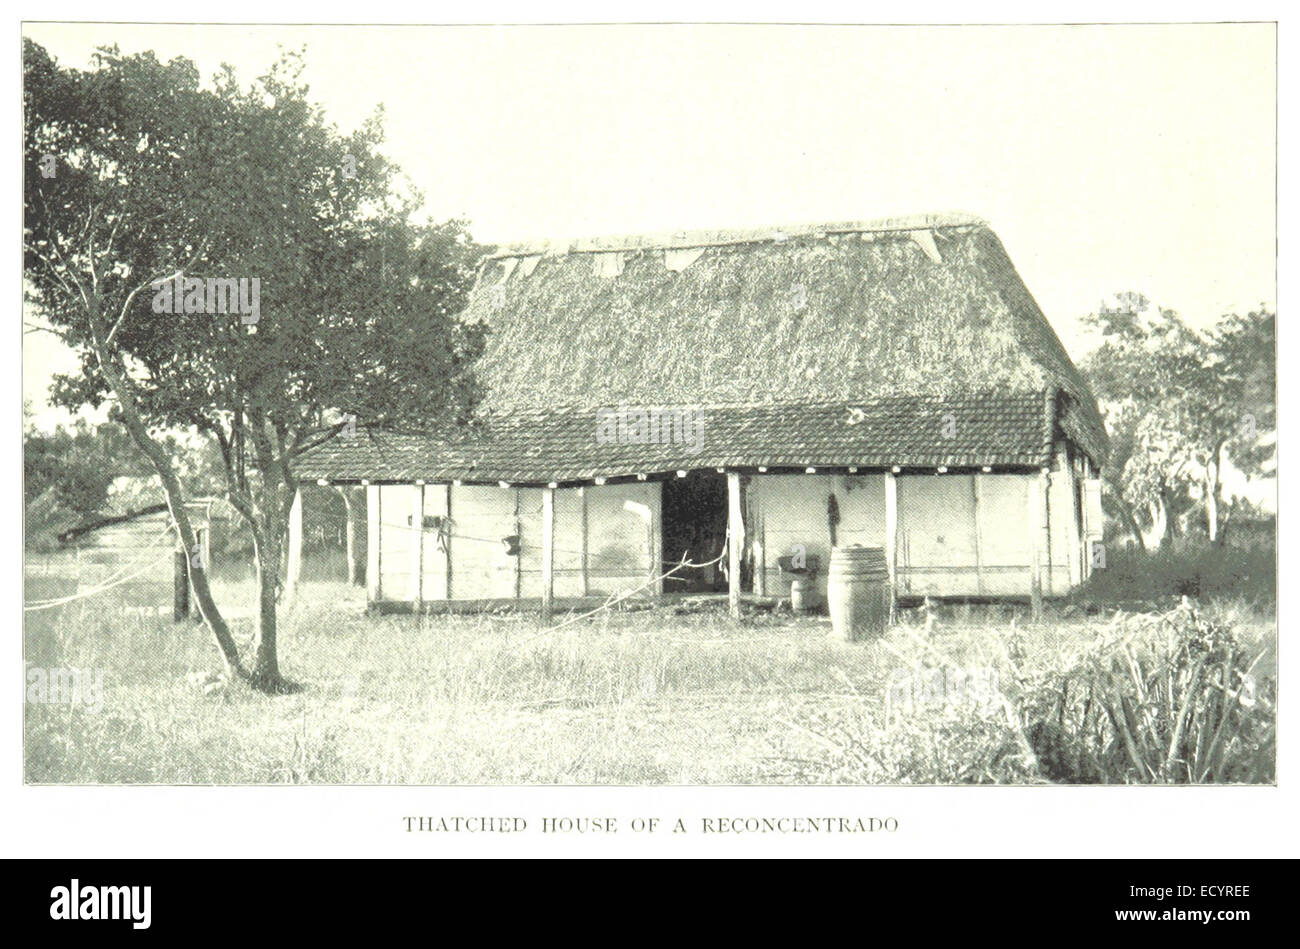 CLARK(1899) Cuba p309 - THATCHED HOUSE OF A RECONCENTRADO - Stock Image